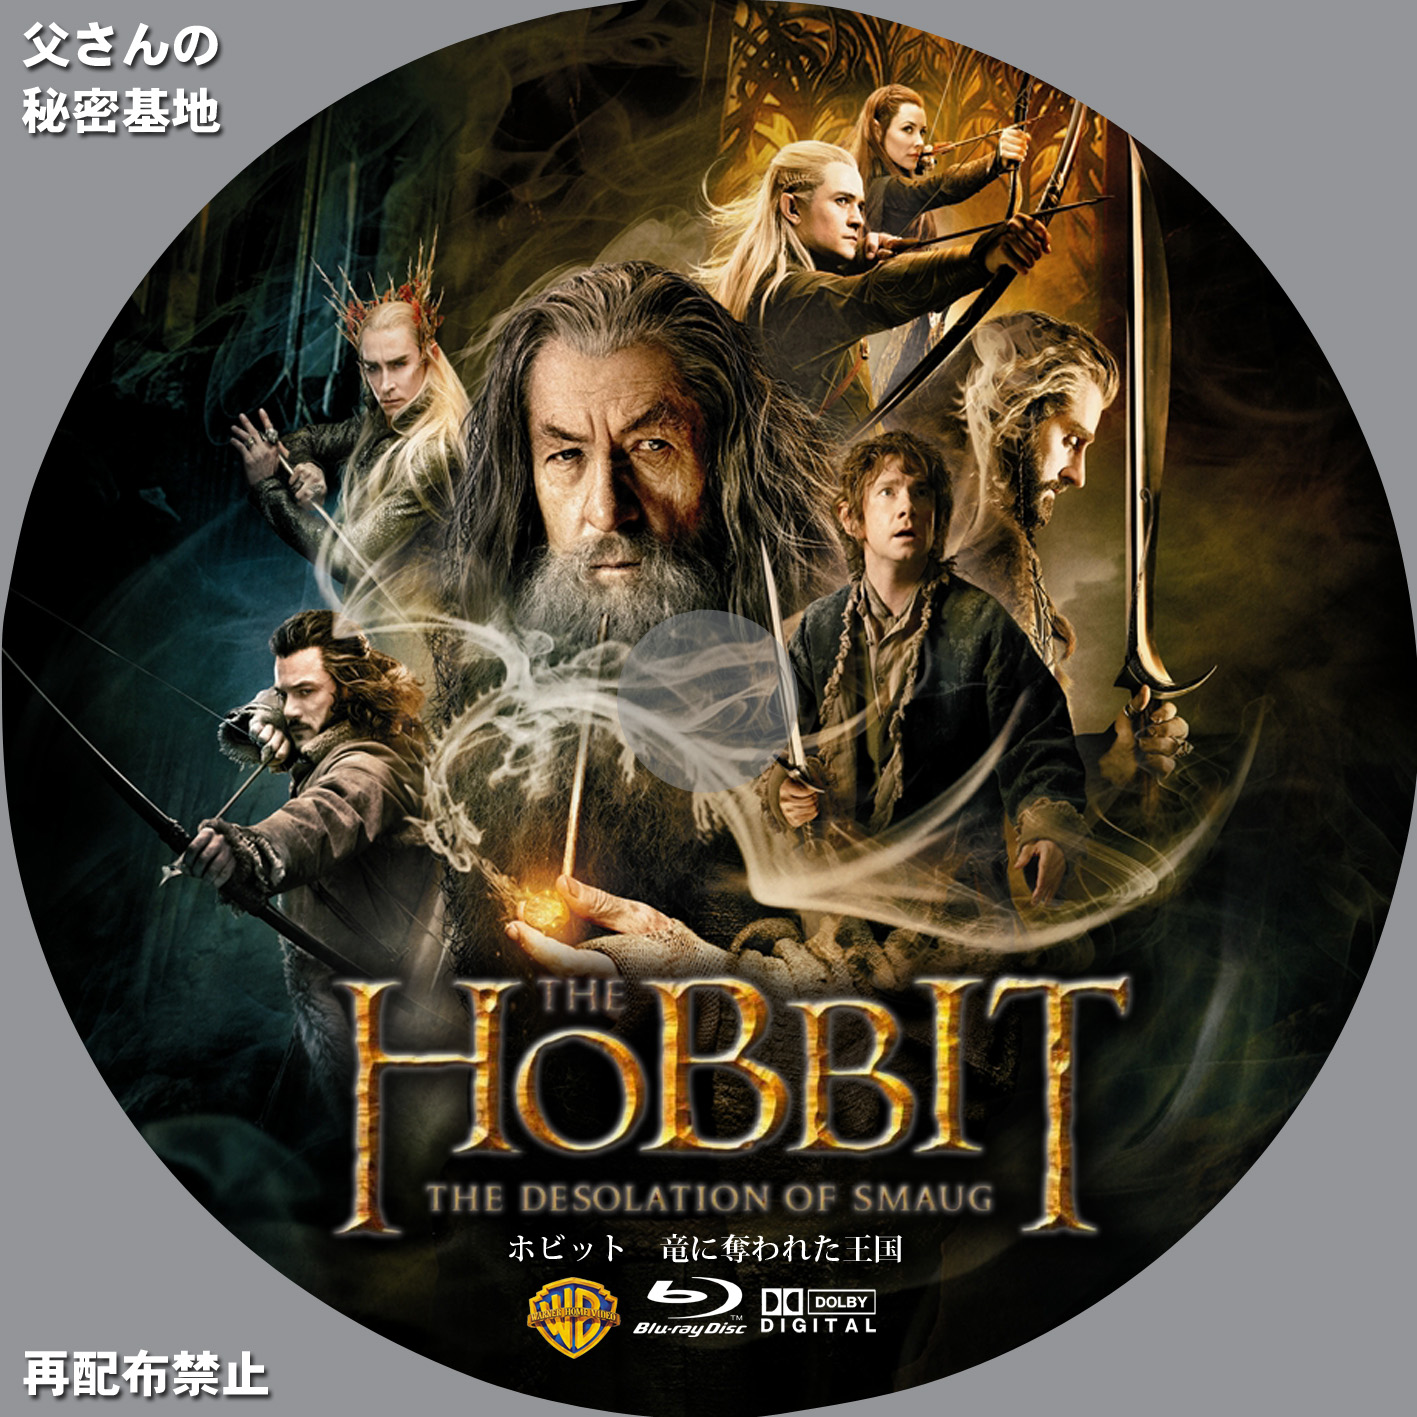 The Hobbit The Desolation of Smaug_BD